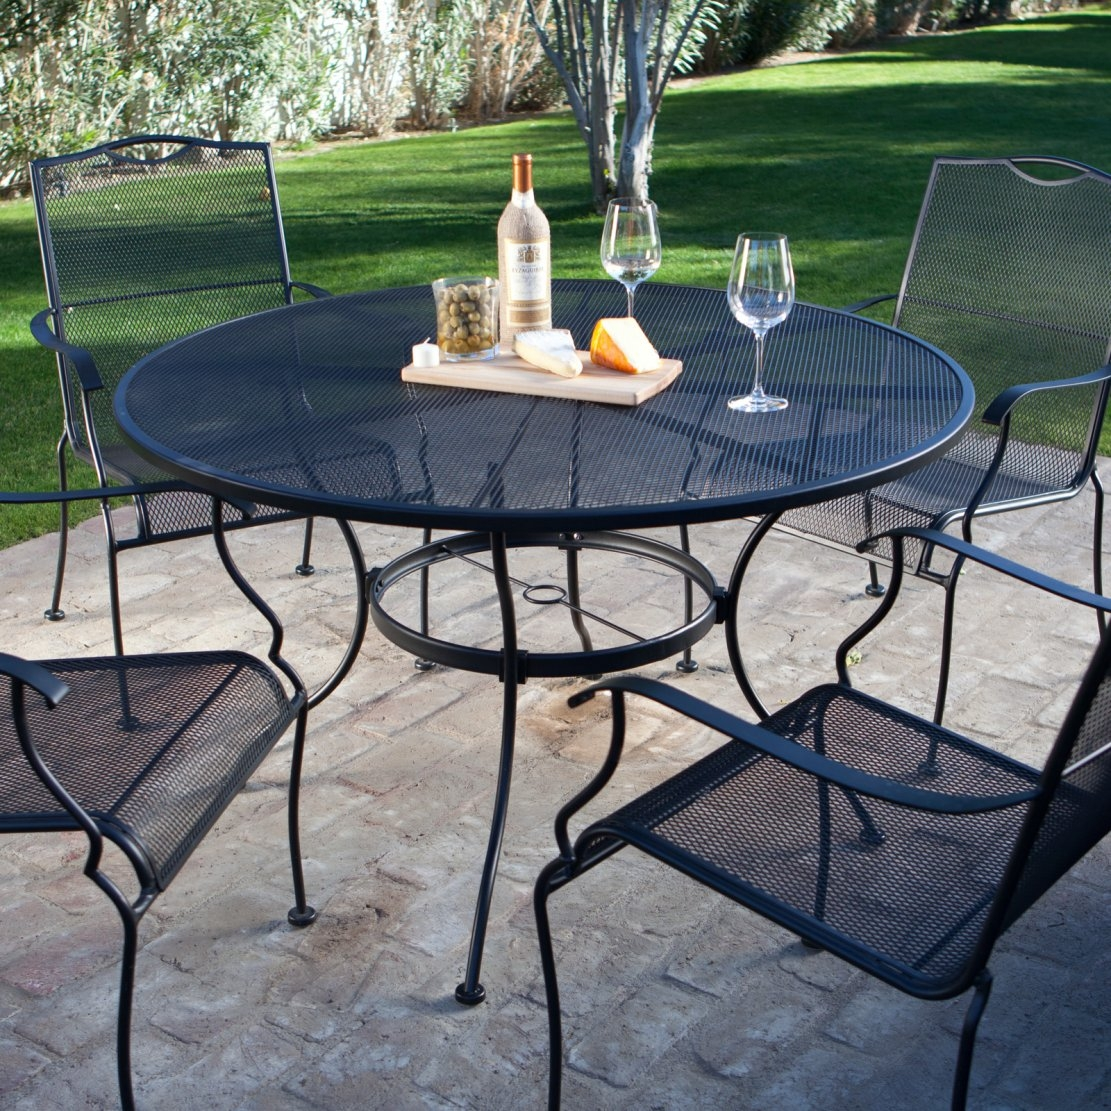 Wrought Iron Table And Chairs 5 Piece Wrought Iron Patio Furniture Dining Set Seats 4